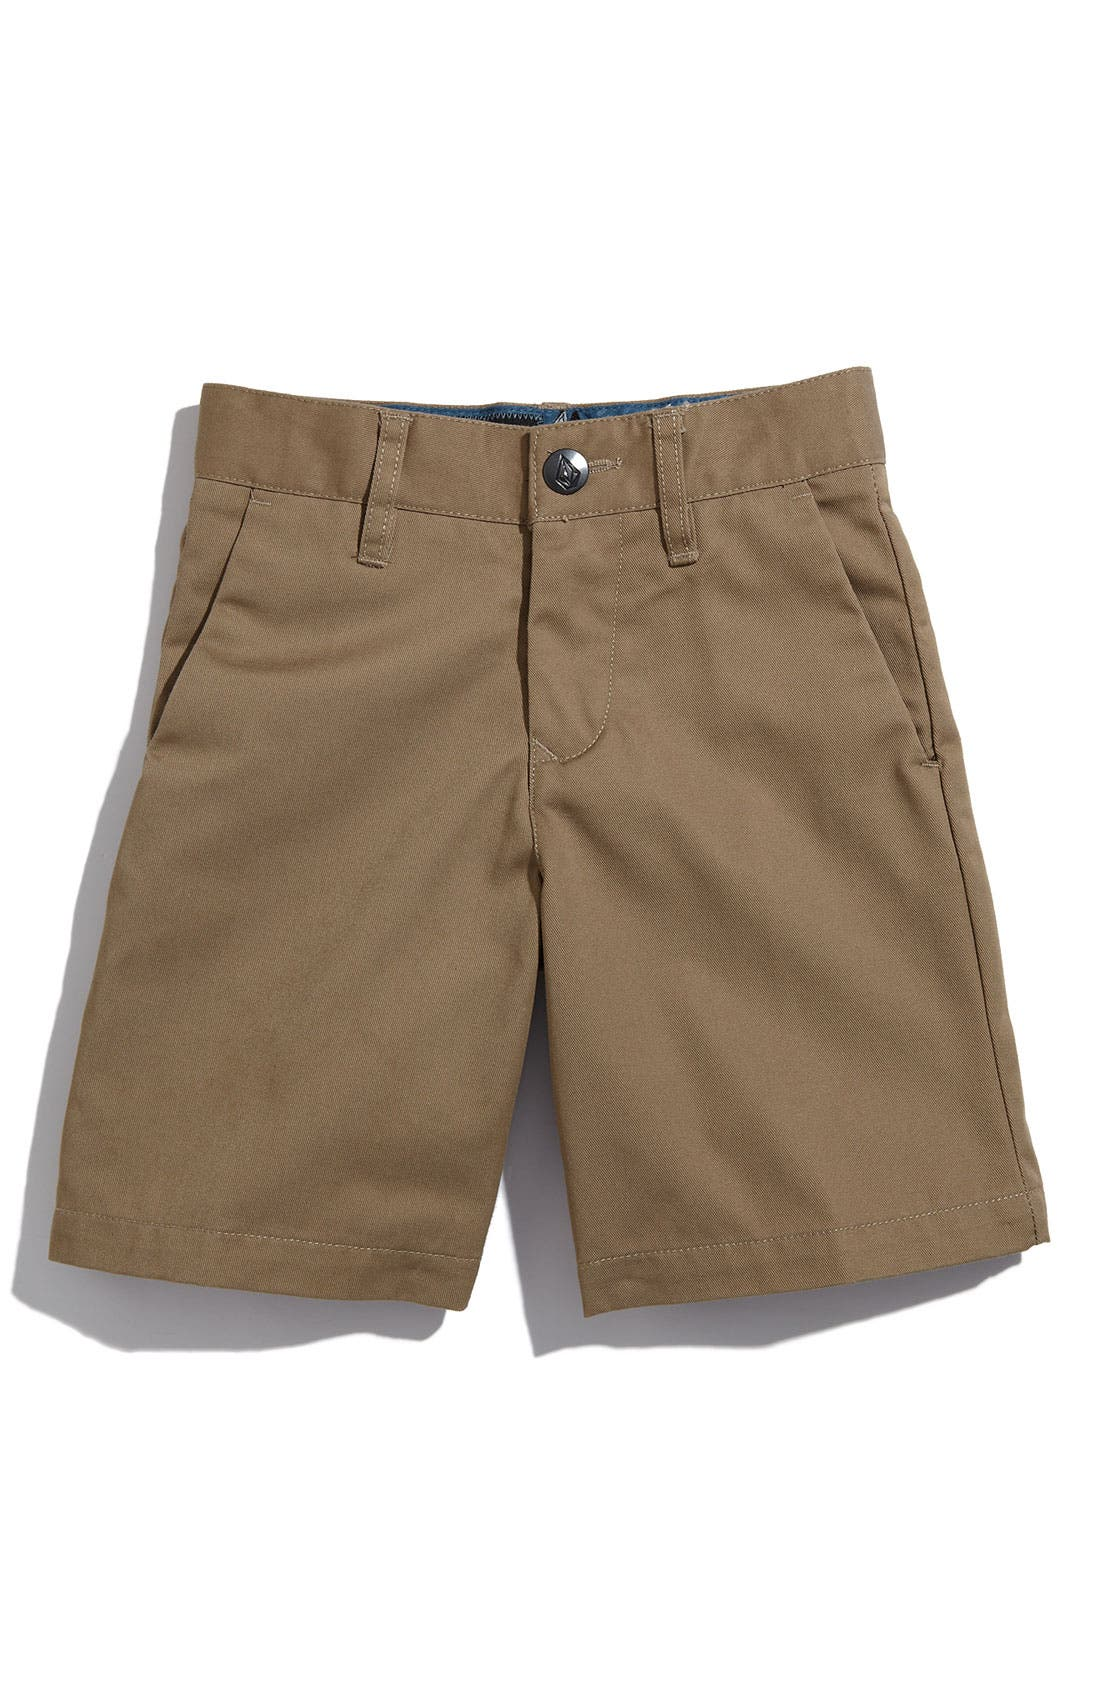 Main Image - Volcom 'Modern' Chino Shorts (Little Boys)